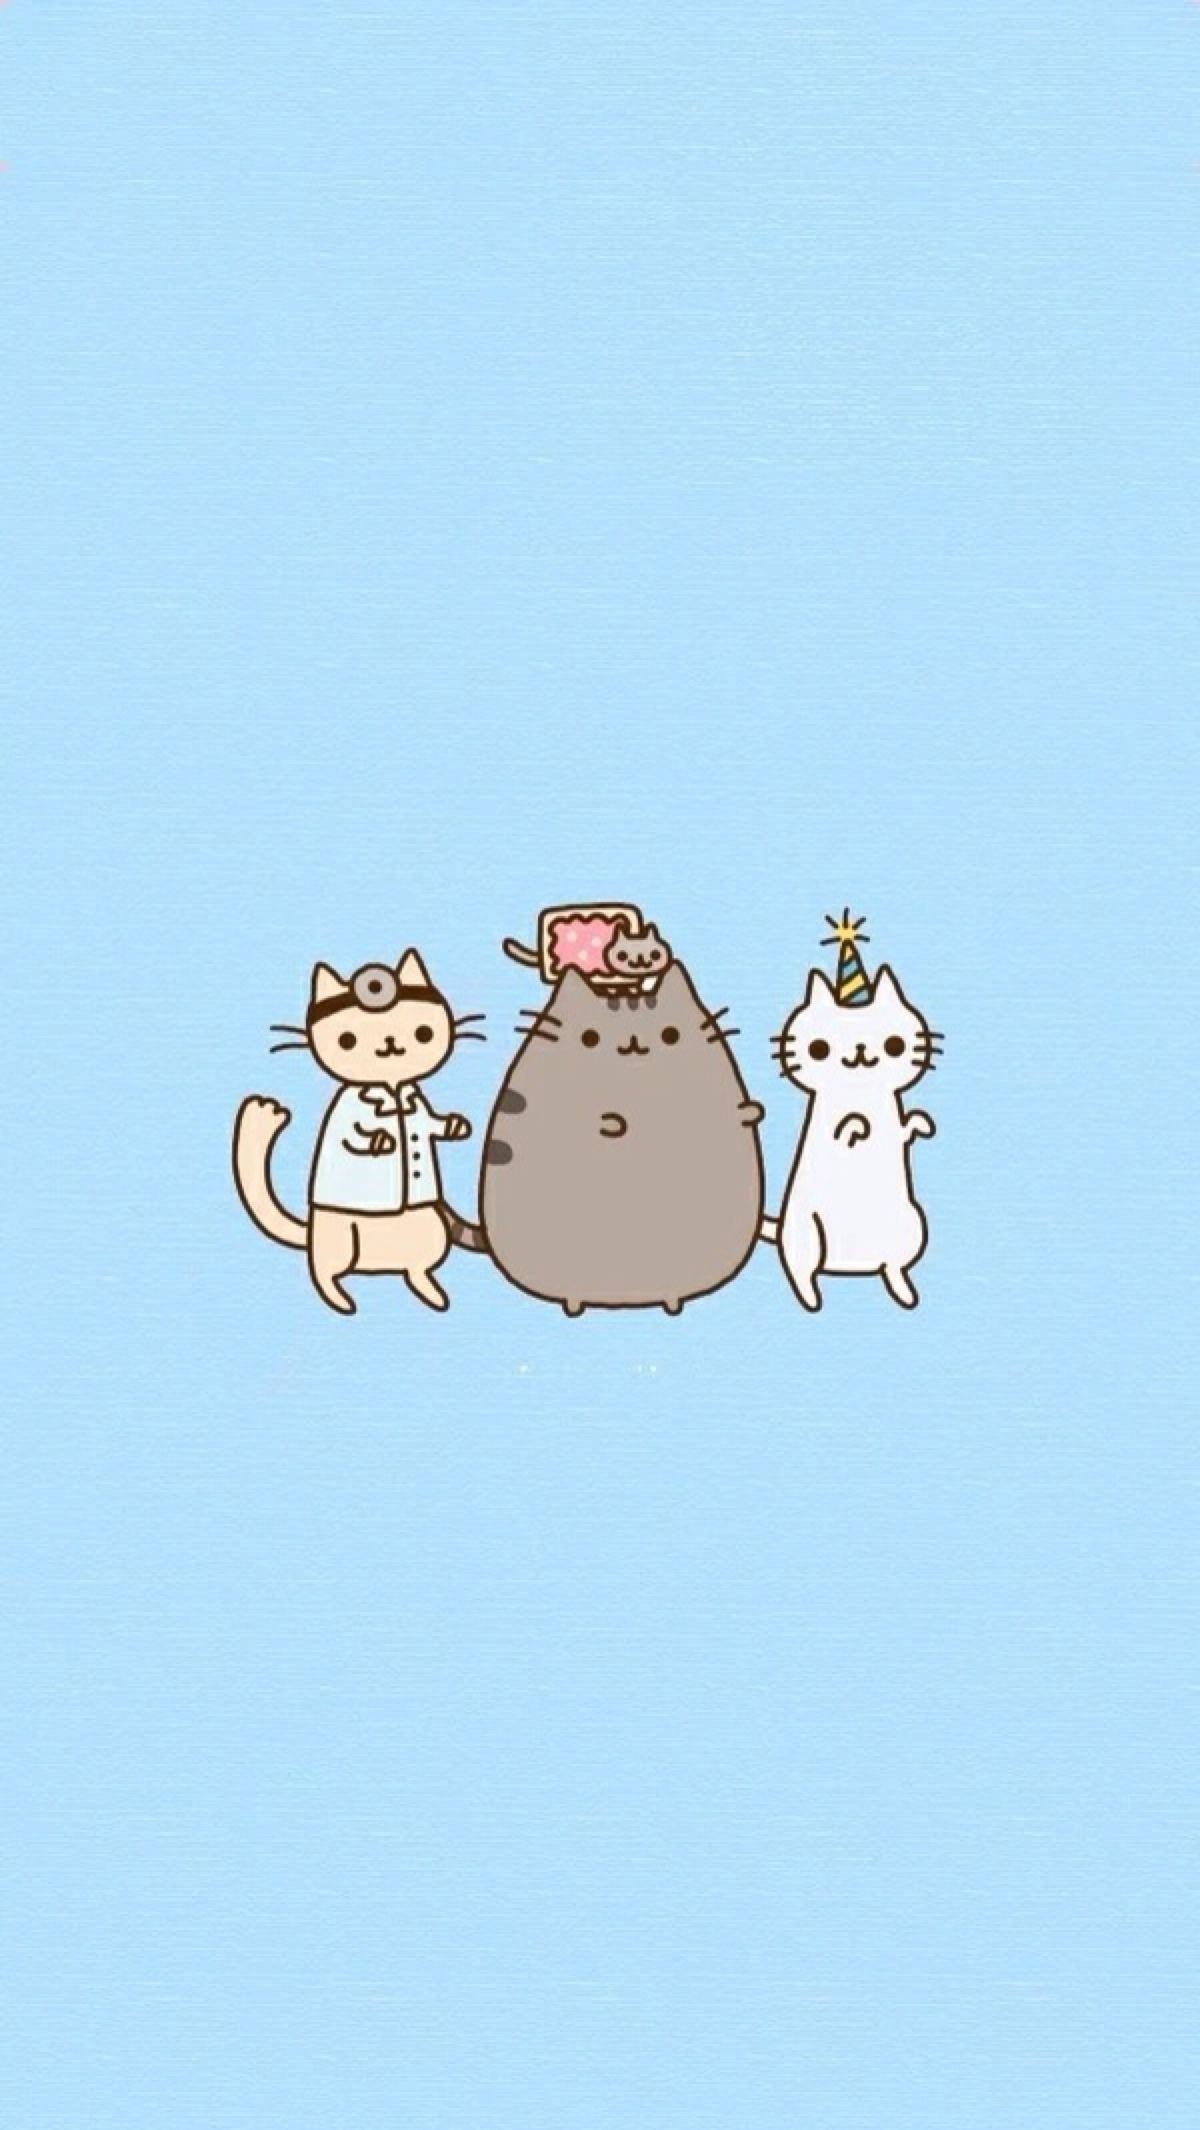 Pusheen The Cat Background   Funny Cat & Dog Pictures